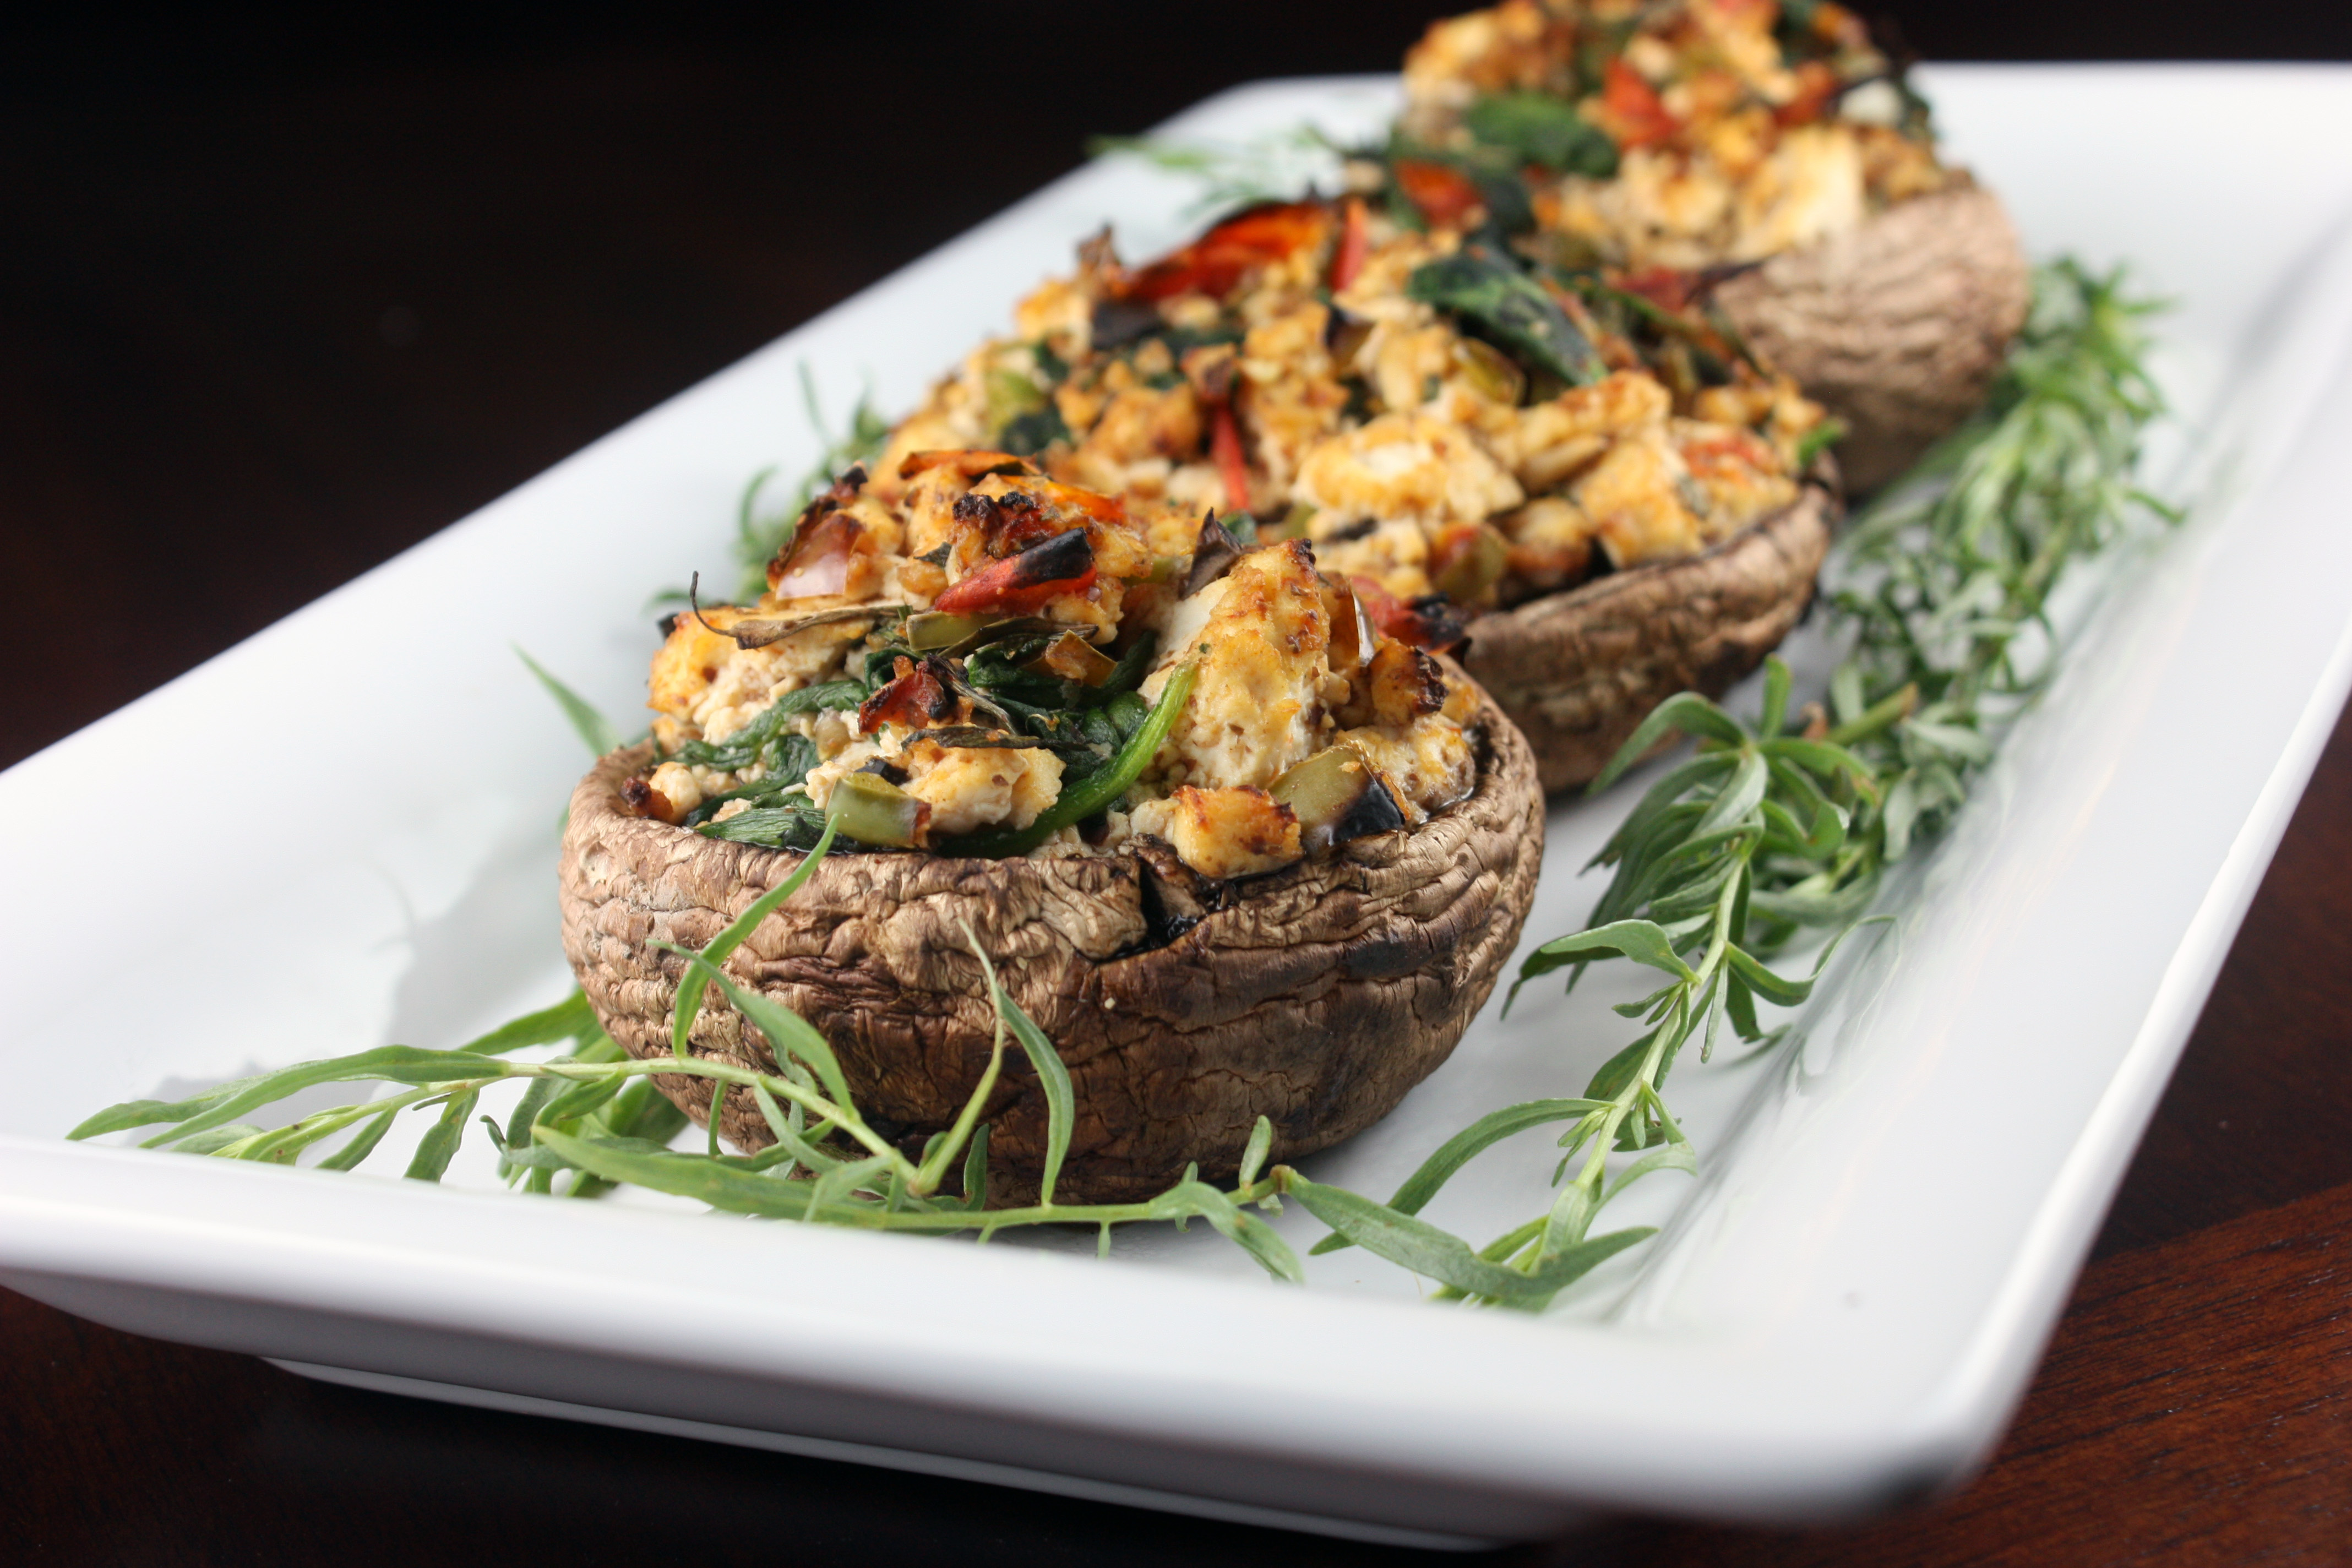 ... mushrooms portobello mushrooms grilled stuffed portobello cheese